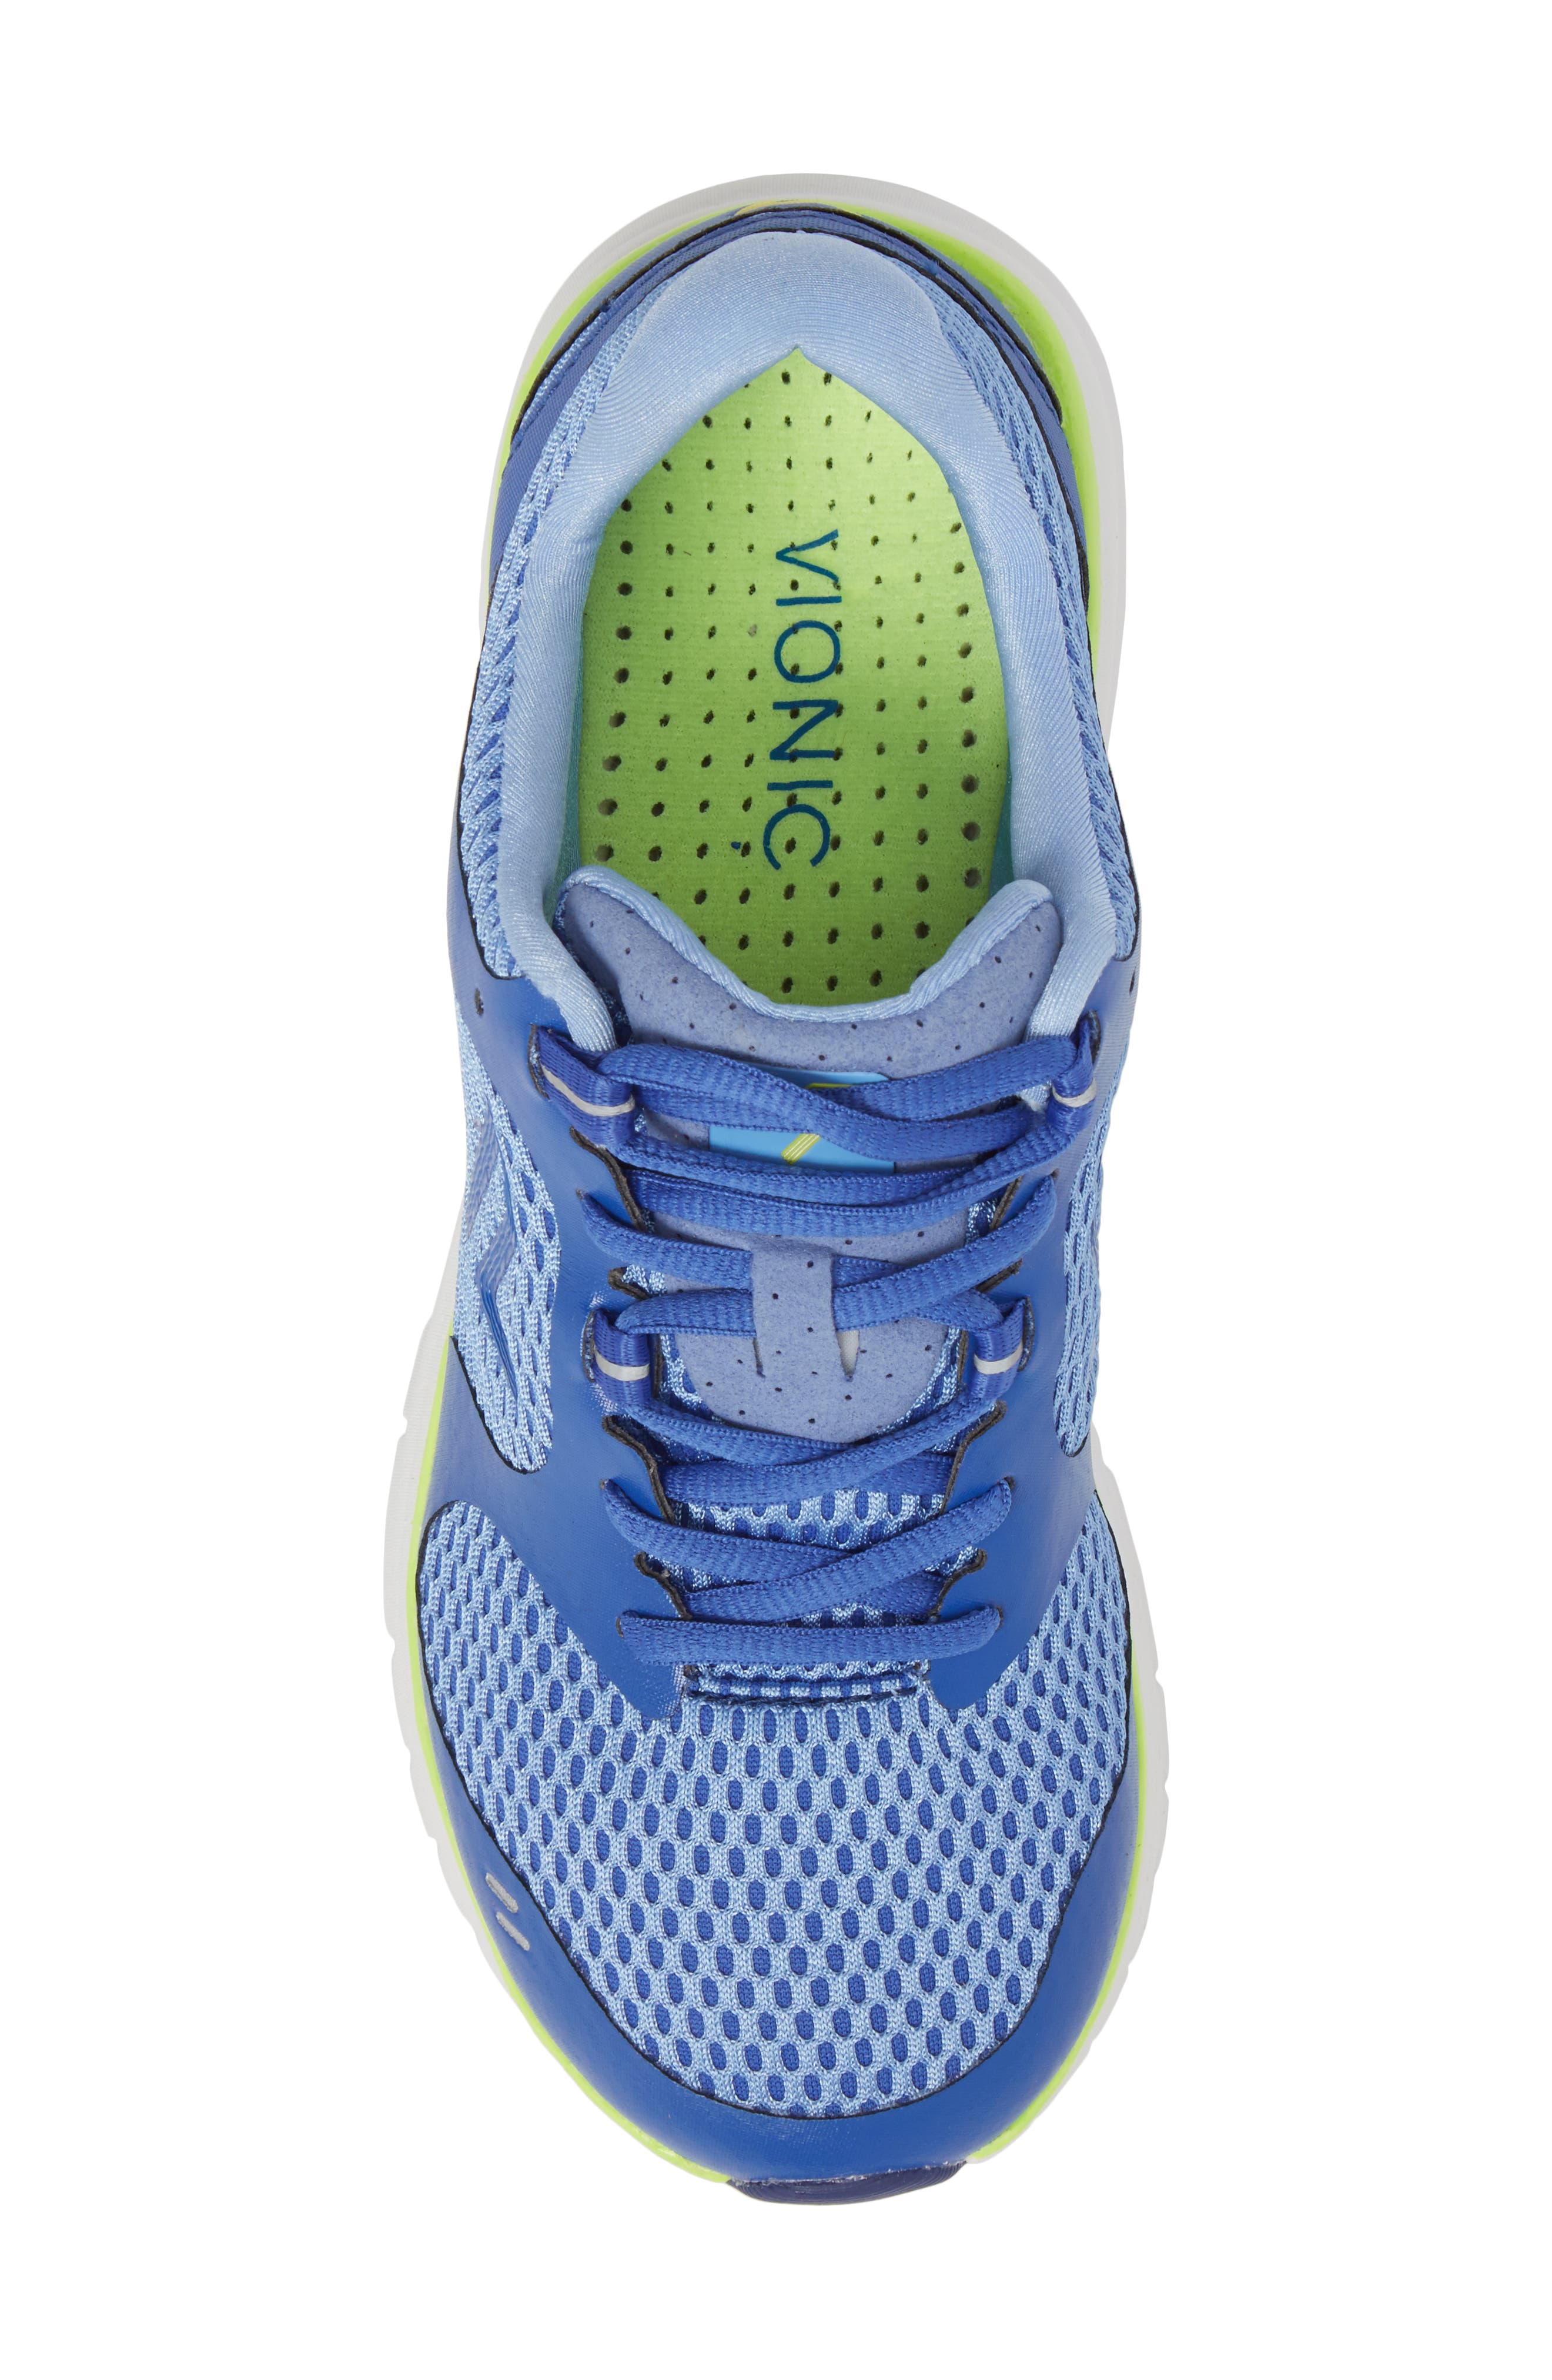 Elation Sneaker,                             Alternate thumbnail 5, color,                             BLUE/ YELLOW